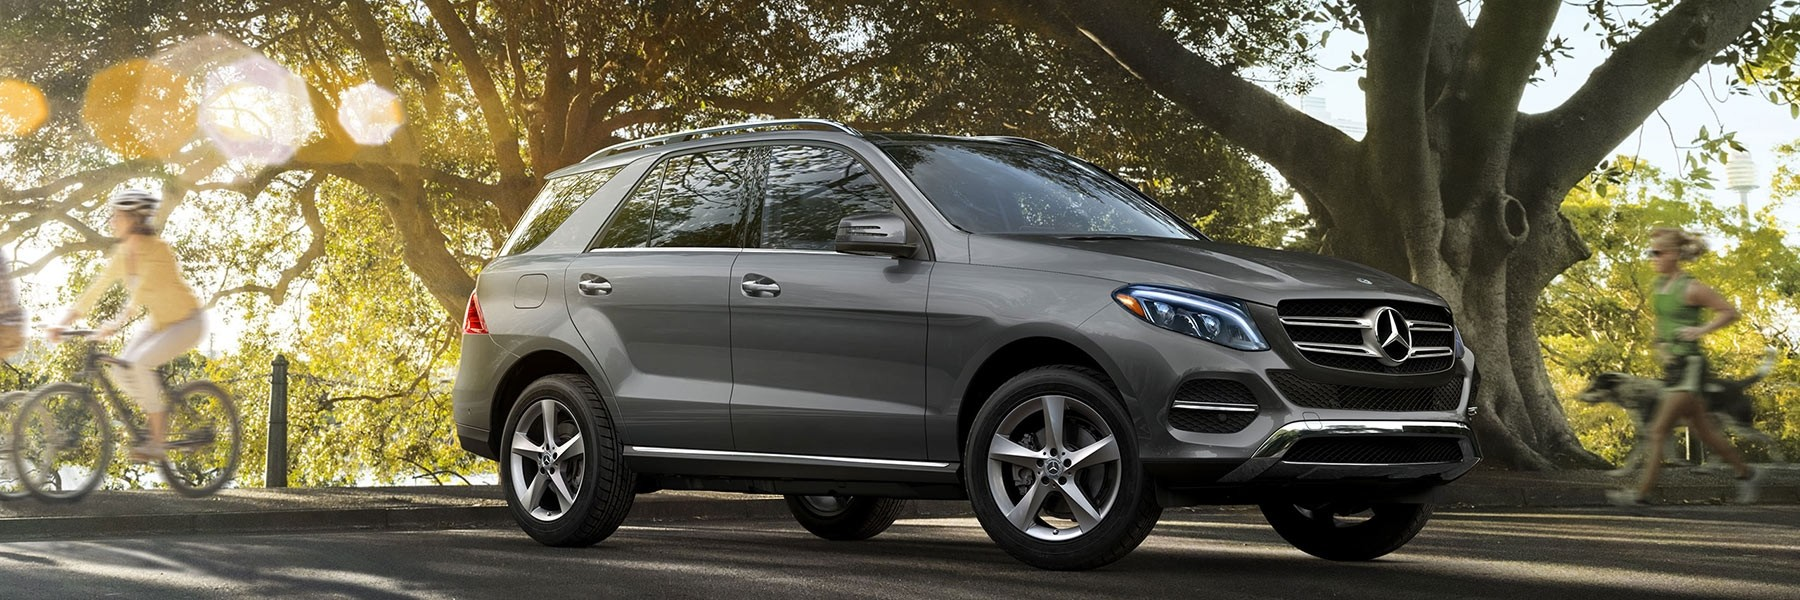 GLE driving near park